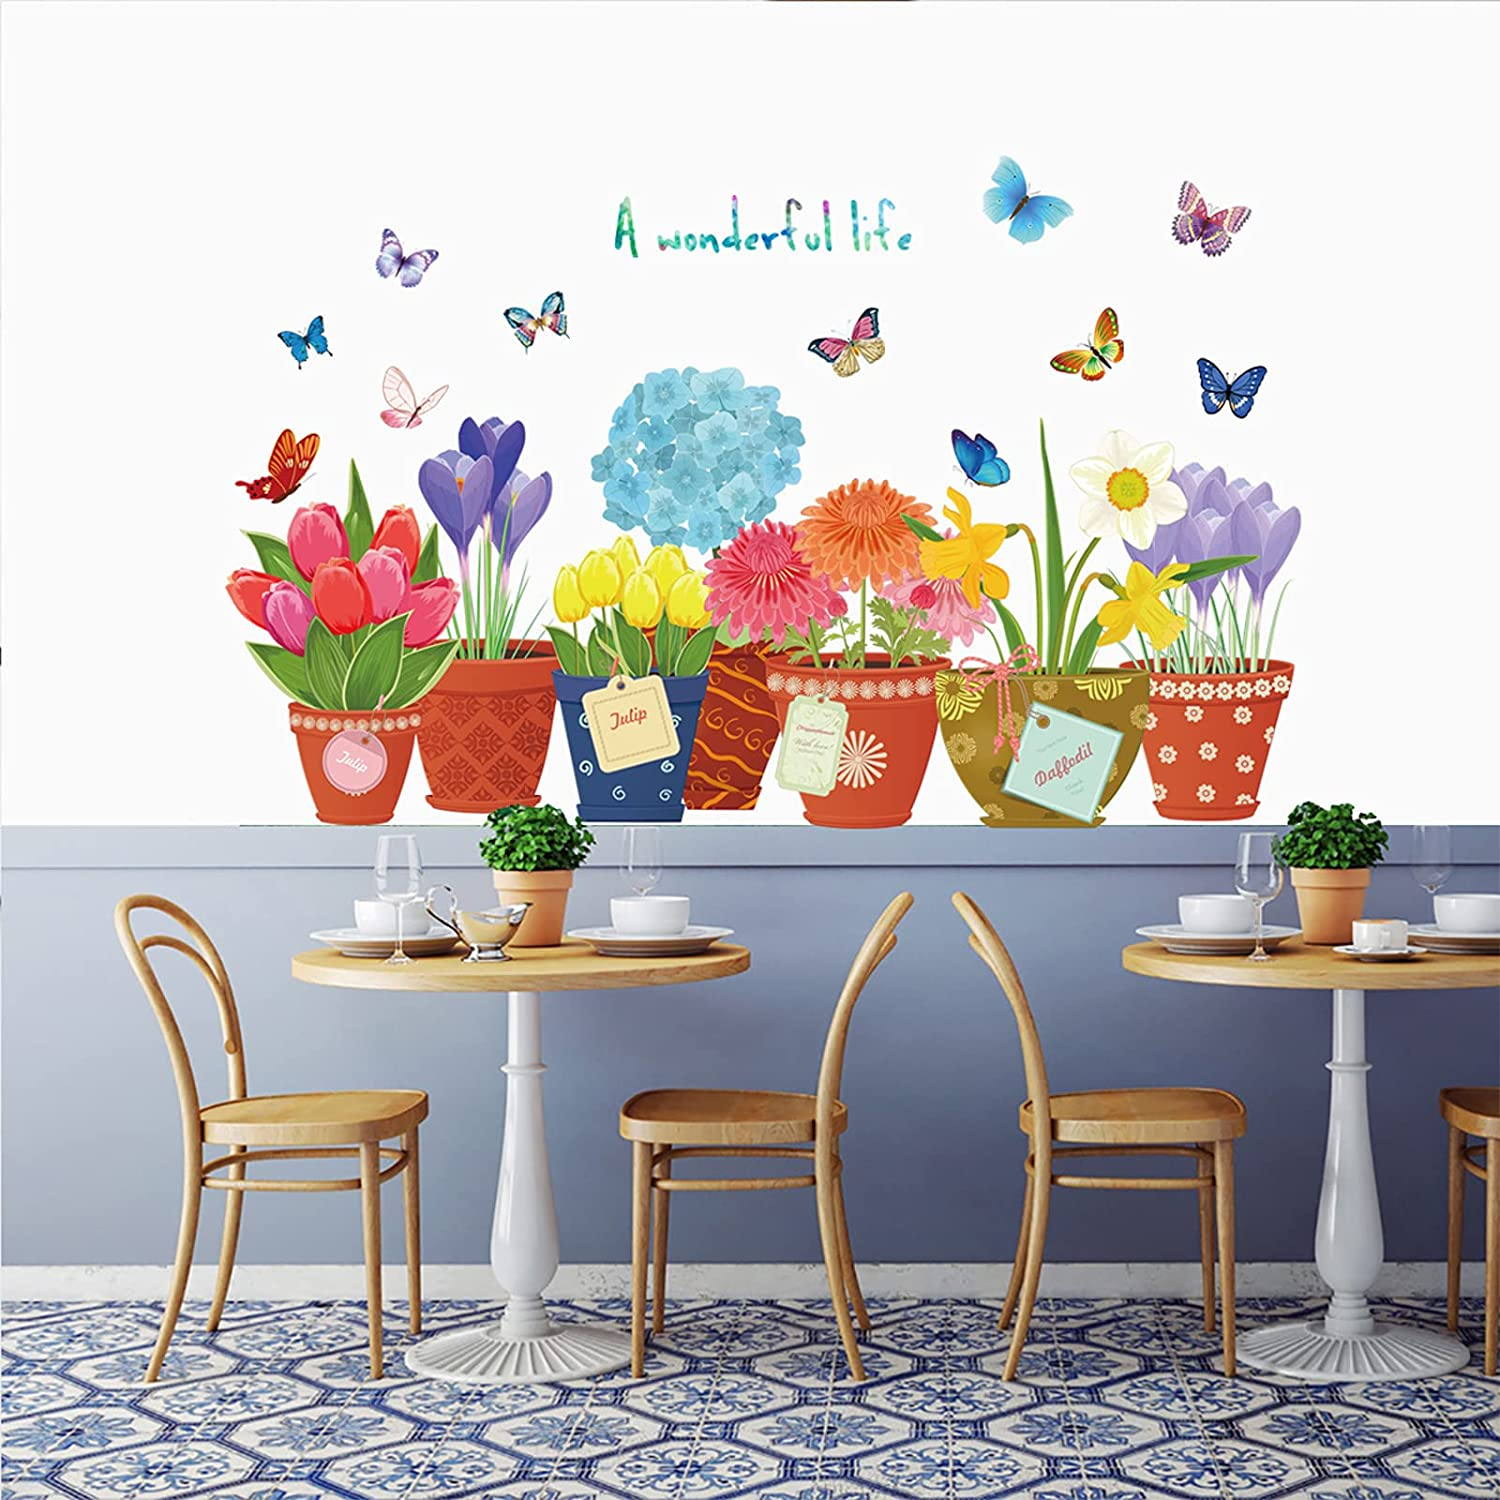 Colorful Flowers Wall Decals, Attractive Flying Butterflies Potted Flowers Bonsai Wall Stickers, Garden Flower Pot Wall Stickers, Removable DIY Plants Art Decor Murals for Bedroom, Nursery, TV Wall